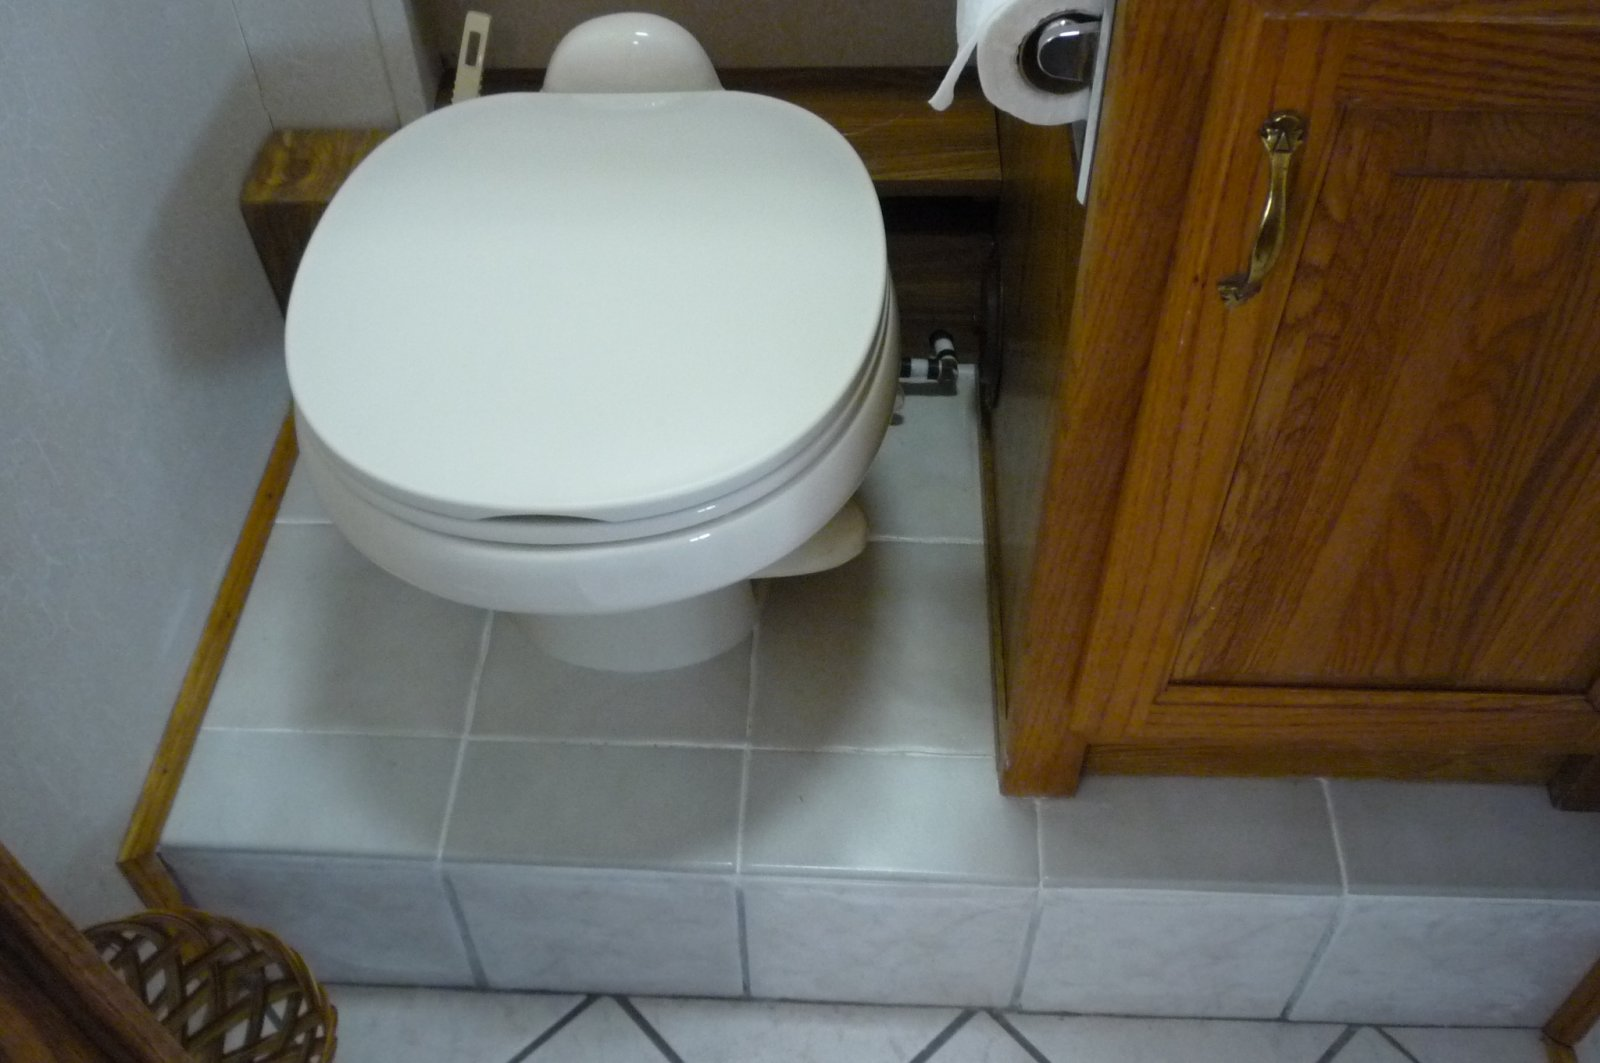 Click image for larger version  Name:newtoilet.jpg Views:70 Size:169.3 KB ID:166173